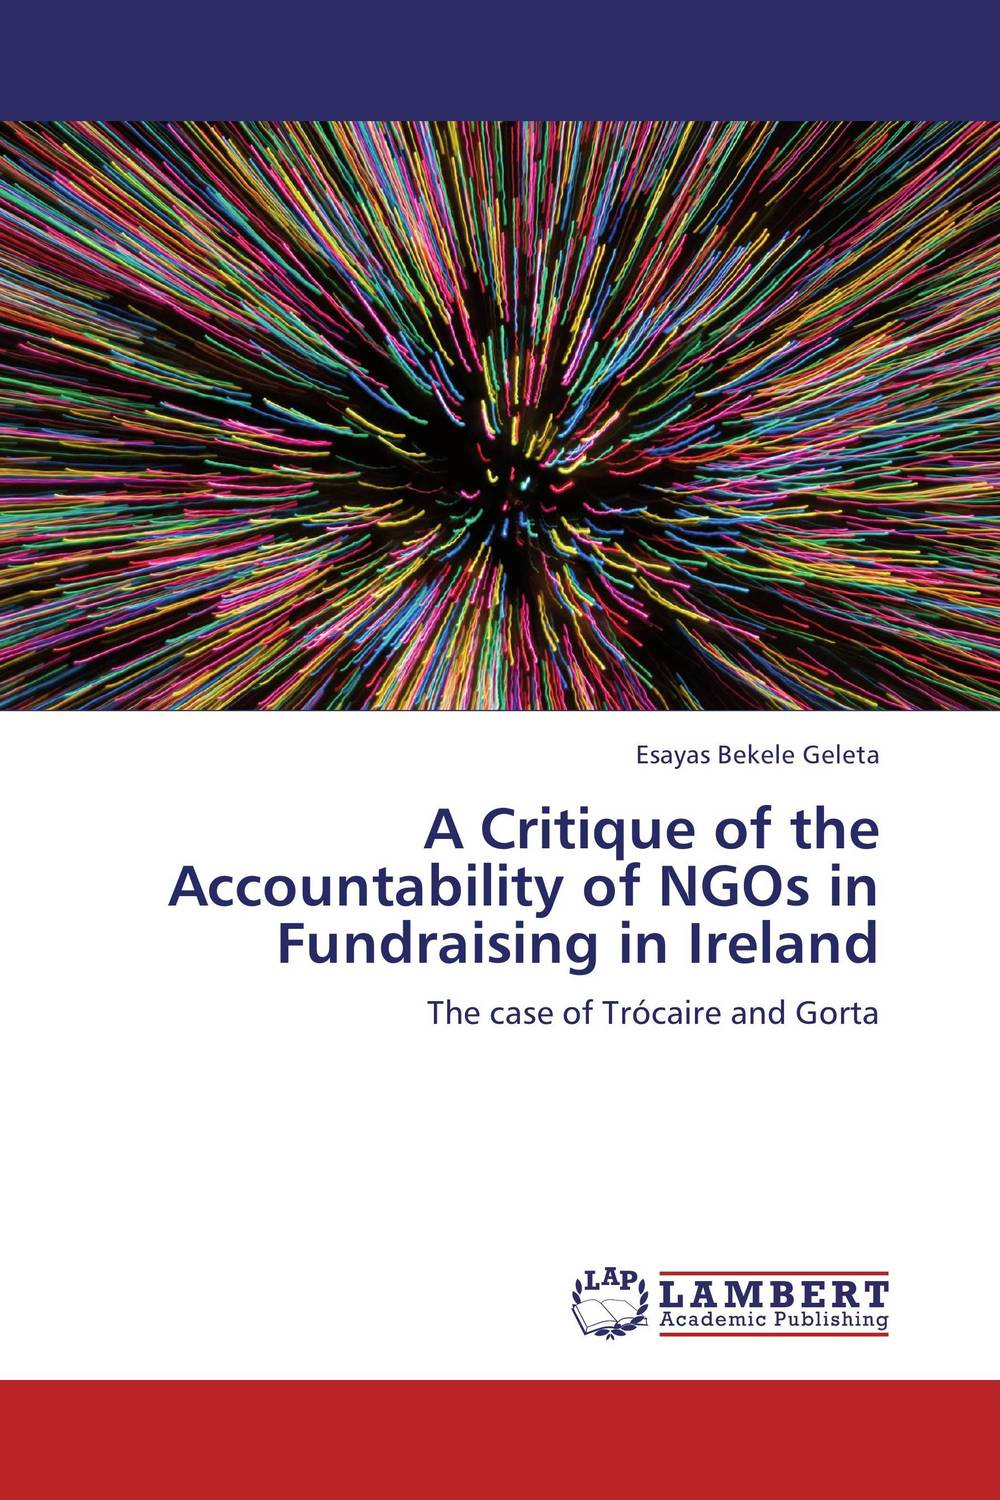 A Critique of the Accountability of NGOs in Fundraising in Ireland a critique of the socialist theories of nkrumah nyerere and awolowo